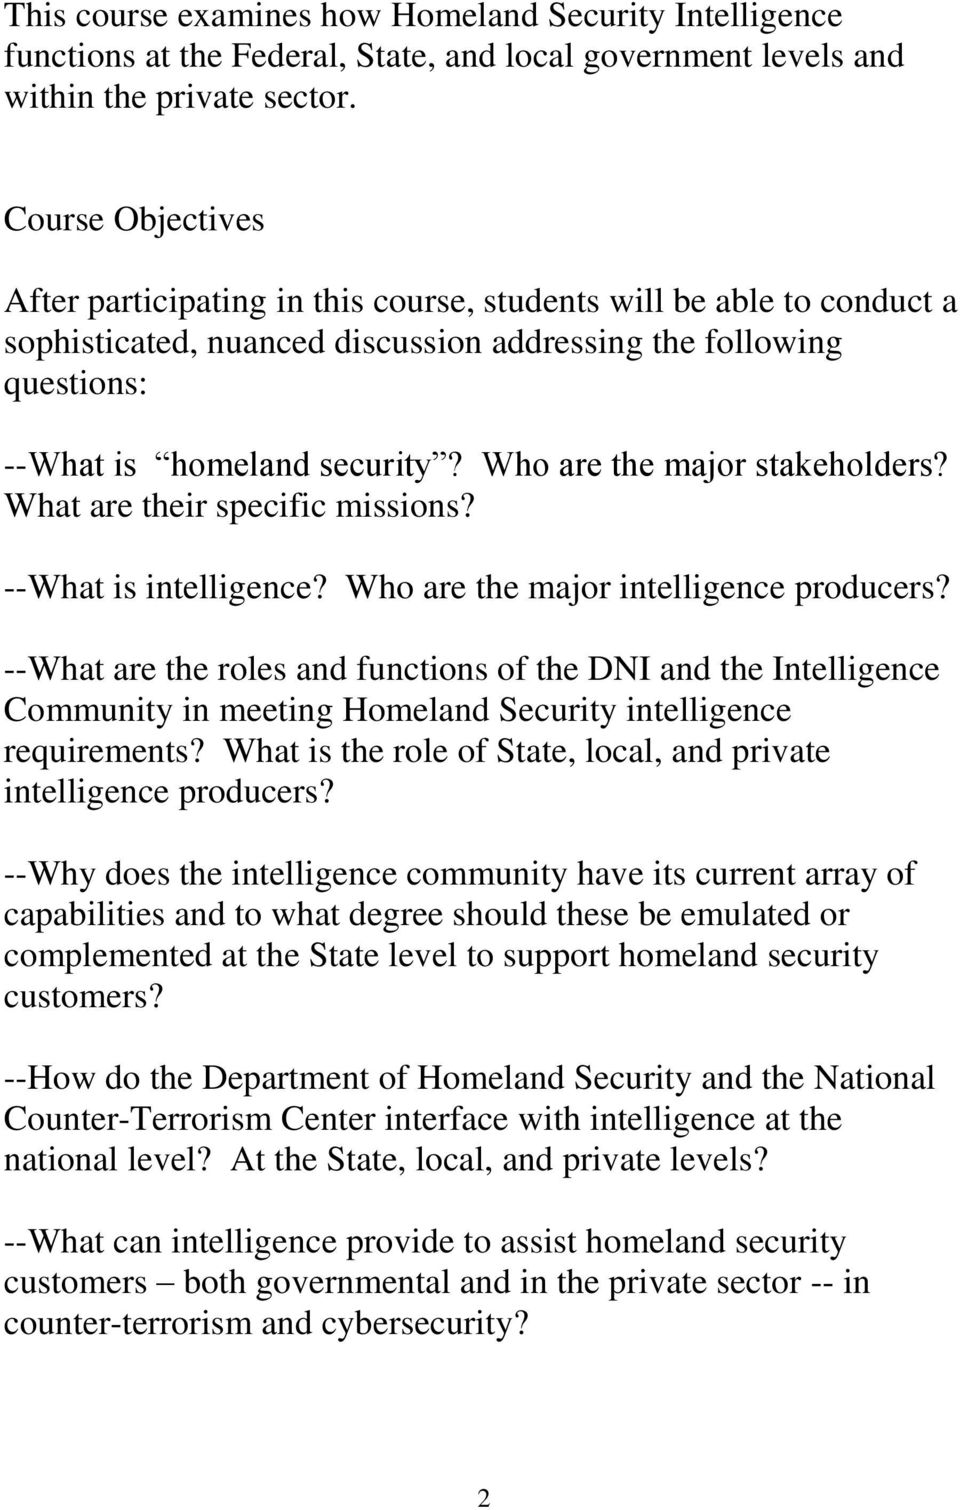 Who are the major stakeholders? What are their specific missions? --What is intelligence? Who are the major intelligence producers?